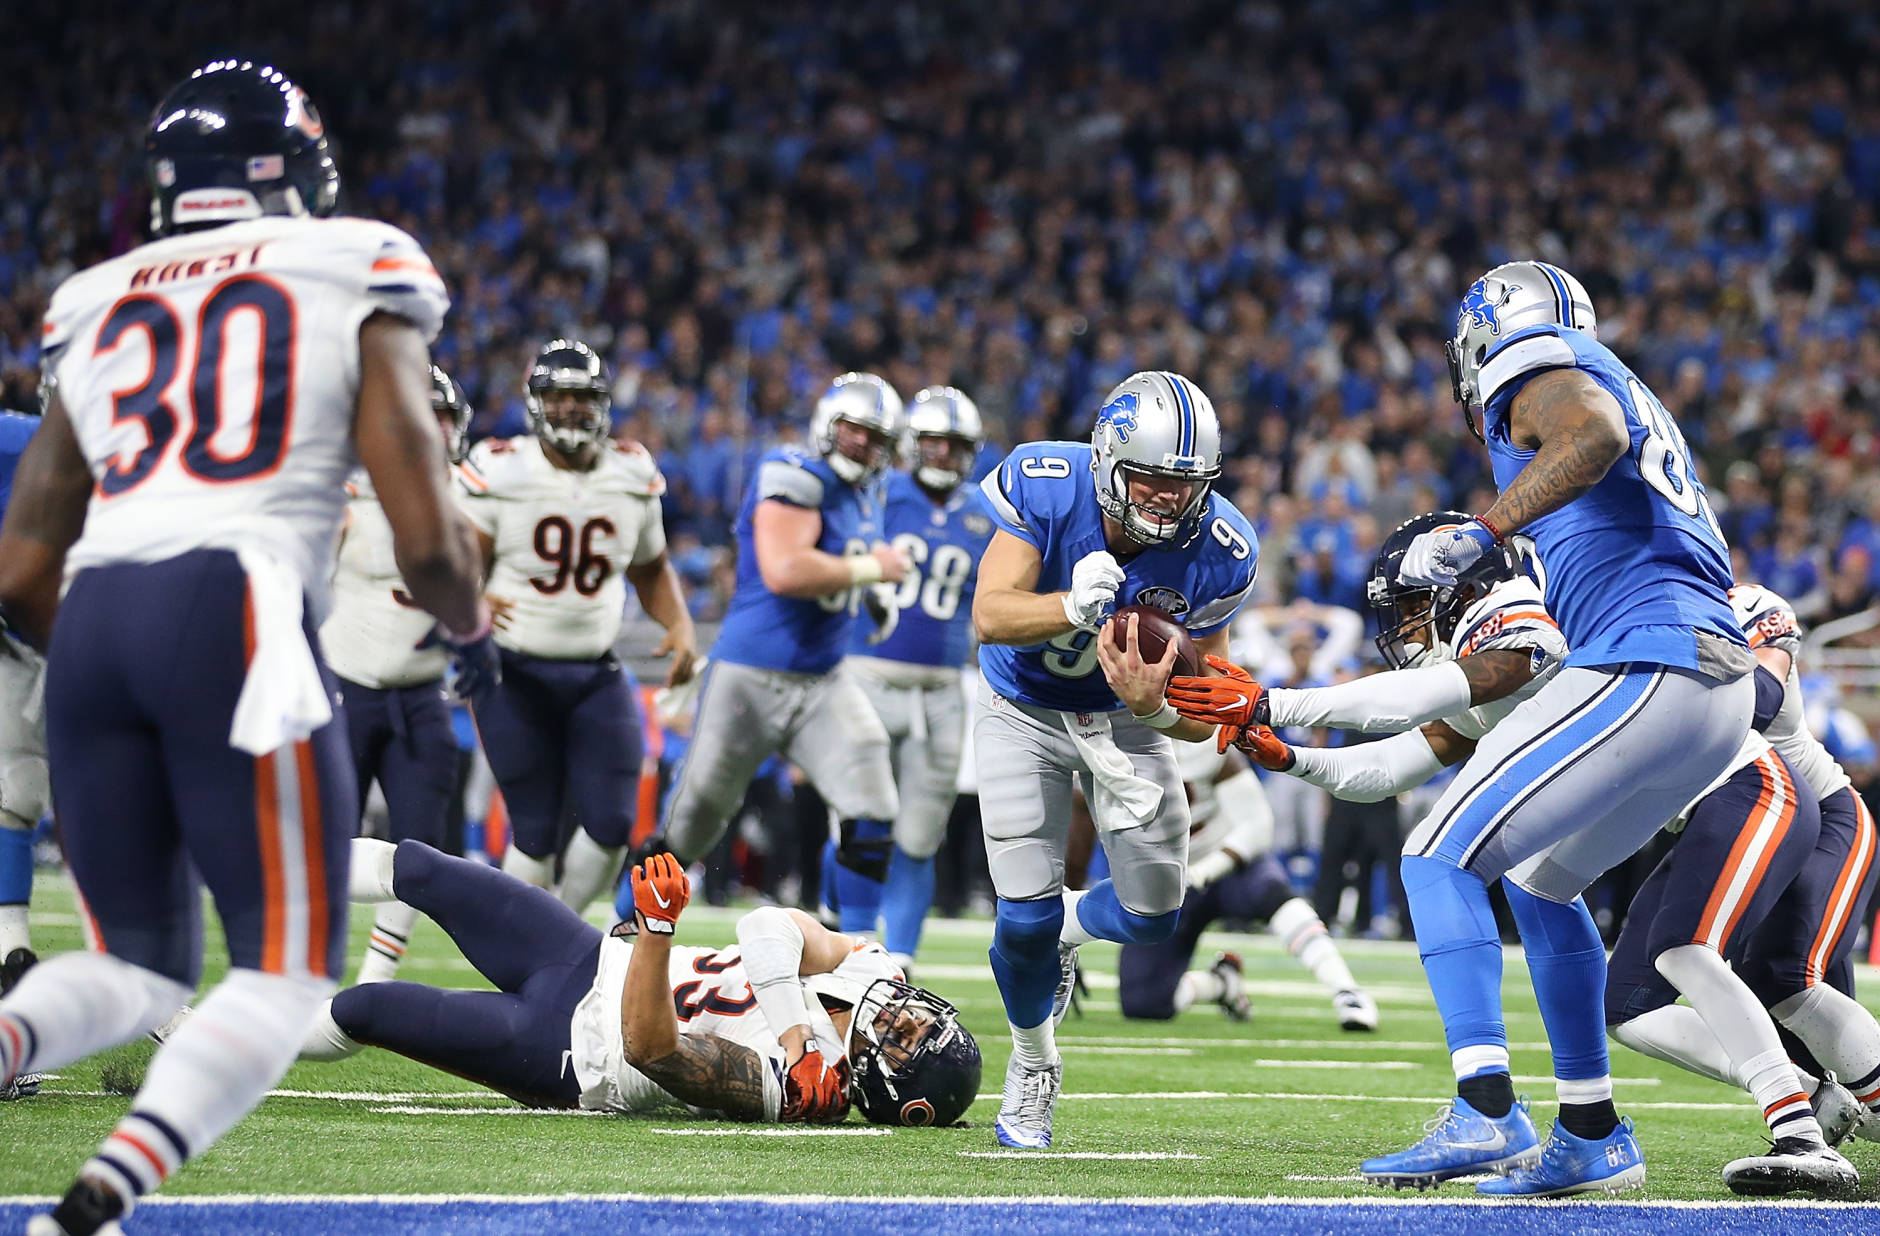 DETROIT, MI - DECEMBER 11: Quarterback Matthew Stafford #9 of the Detroit Lions scrambles for a touchdown against the Chicago Bears during fourth quarter action  at Ford Field on December 11, 2016 in Detroit, Michigan. (Photo by Leon Halip/Getty Images)